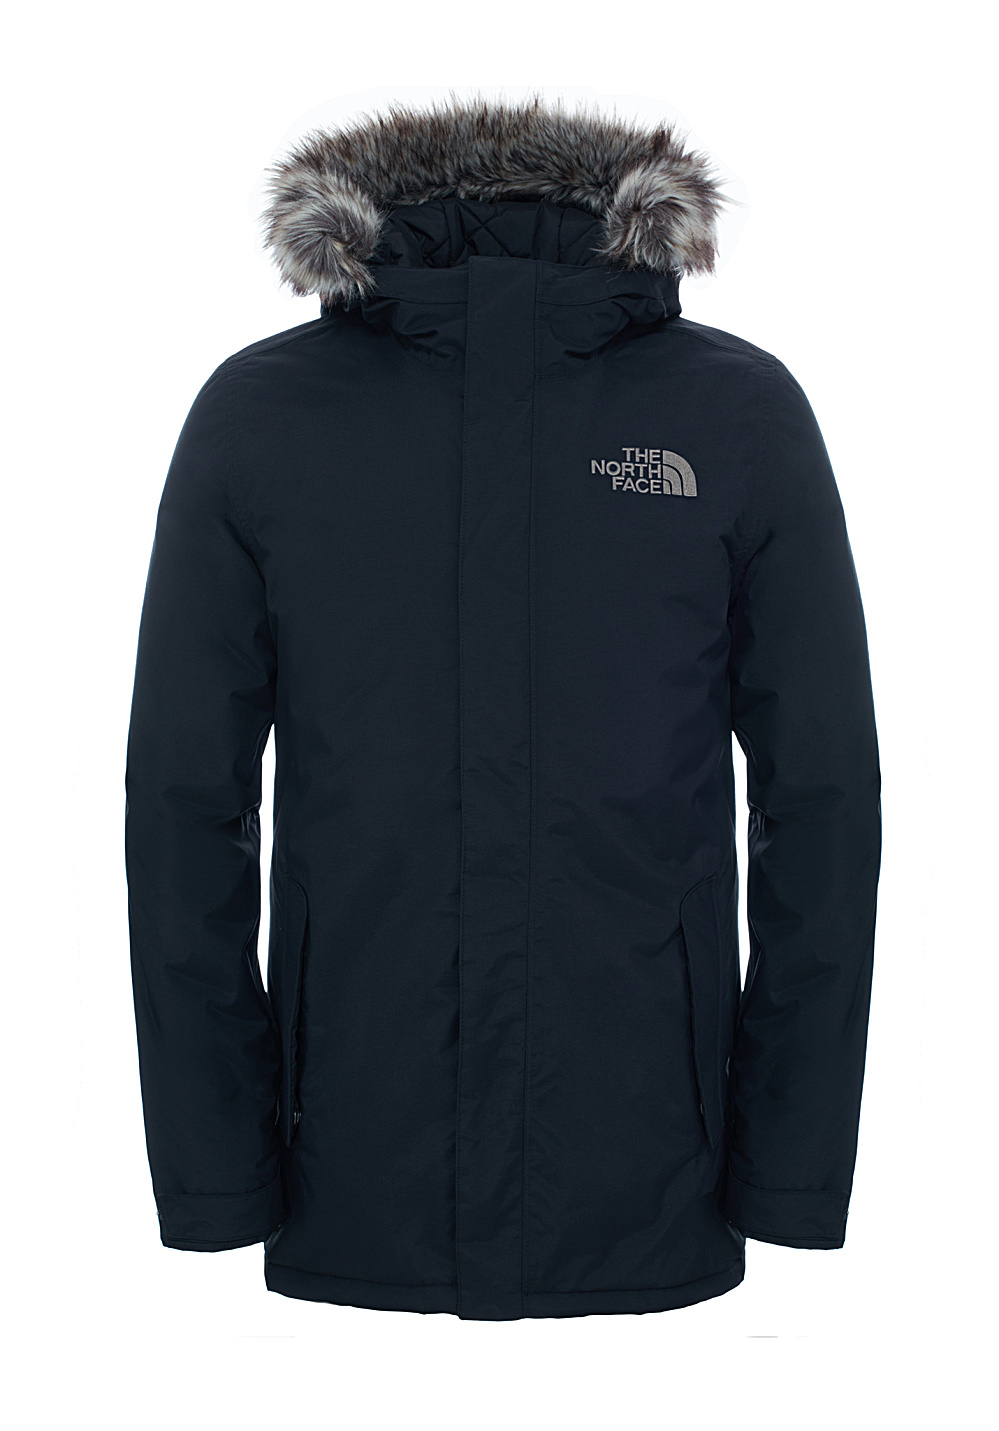 North Face Jacket With Fur Hood